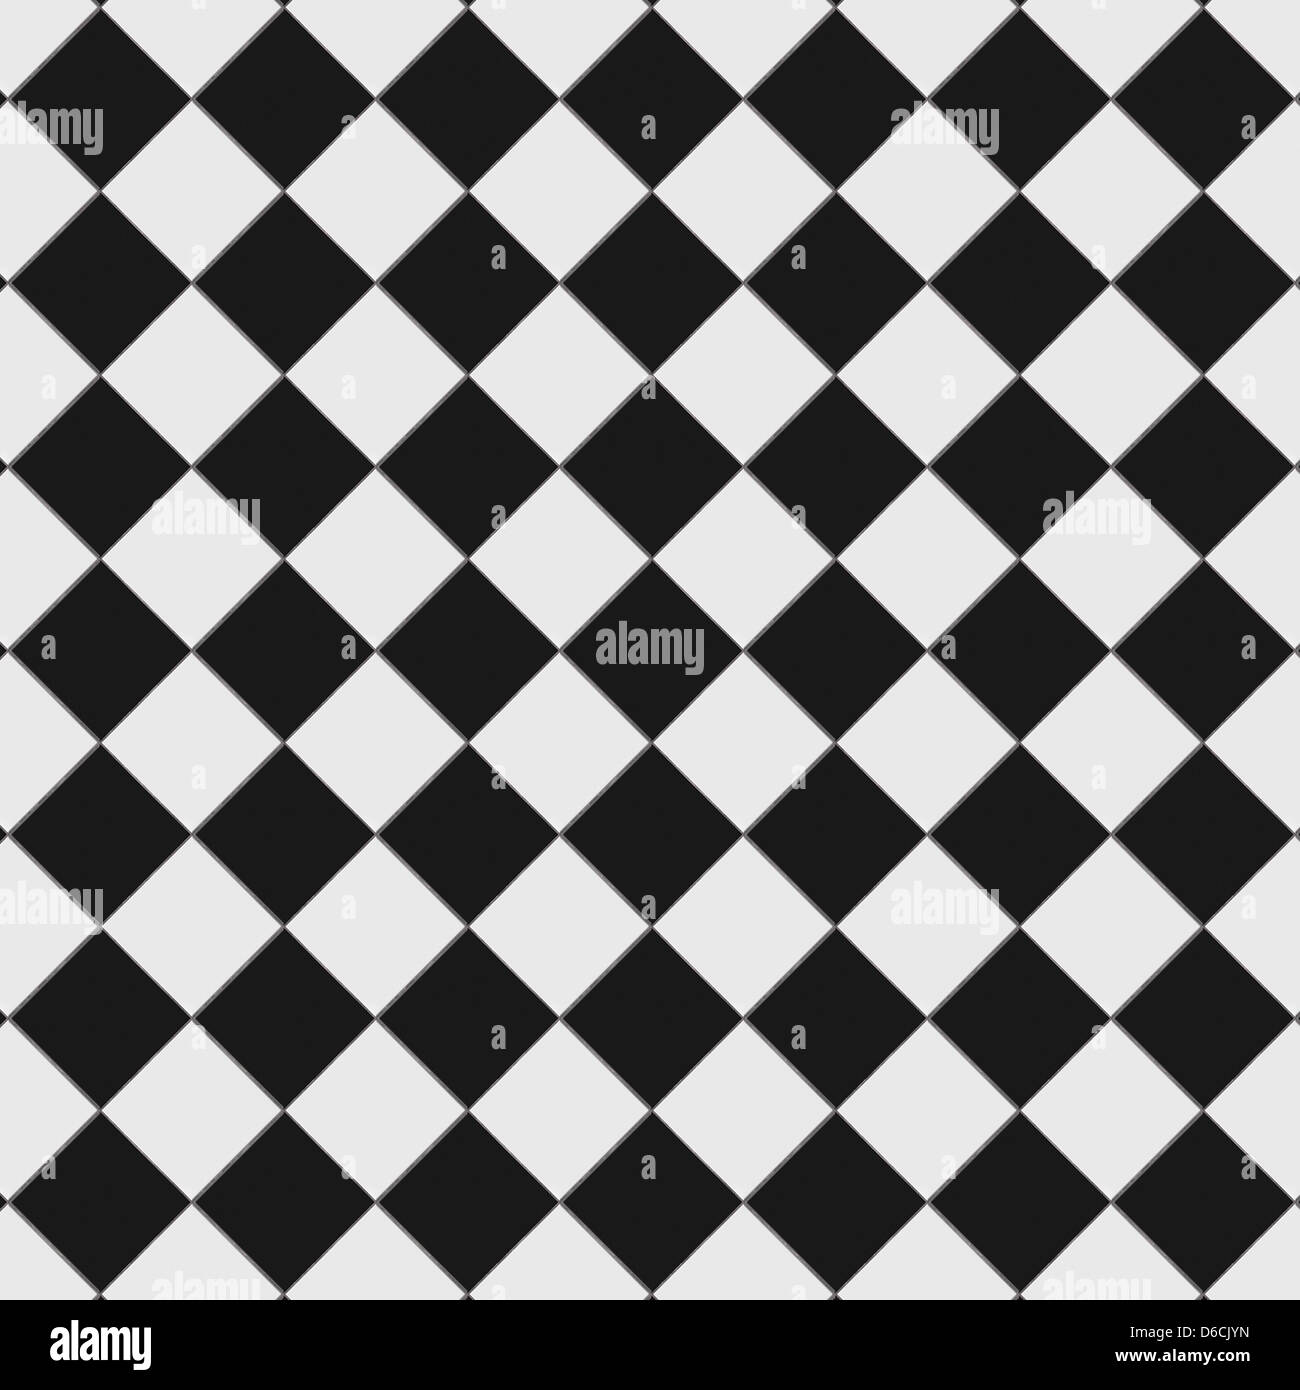 Black and white checkered floor tiles with texture This tiles Stock Photo 55597353  Alamy